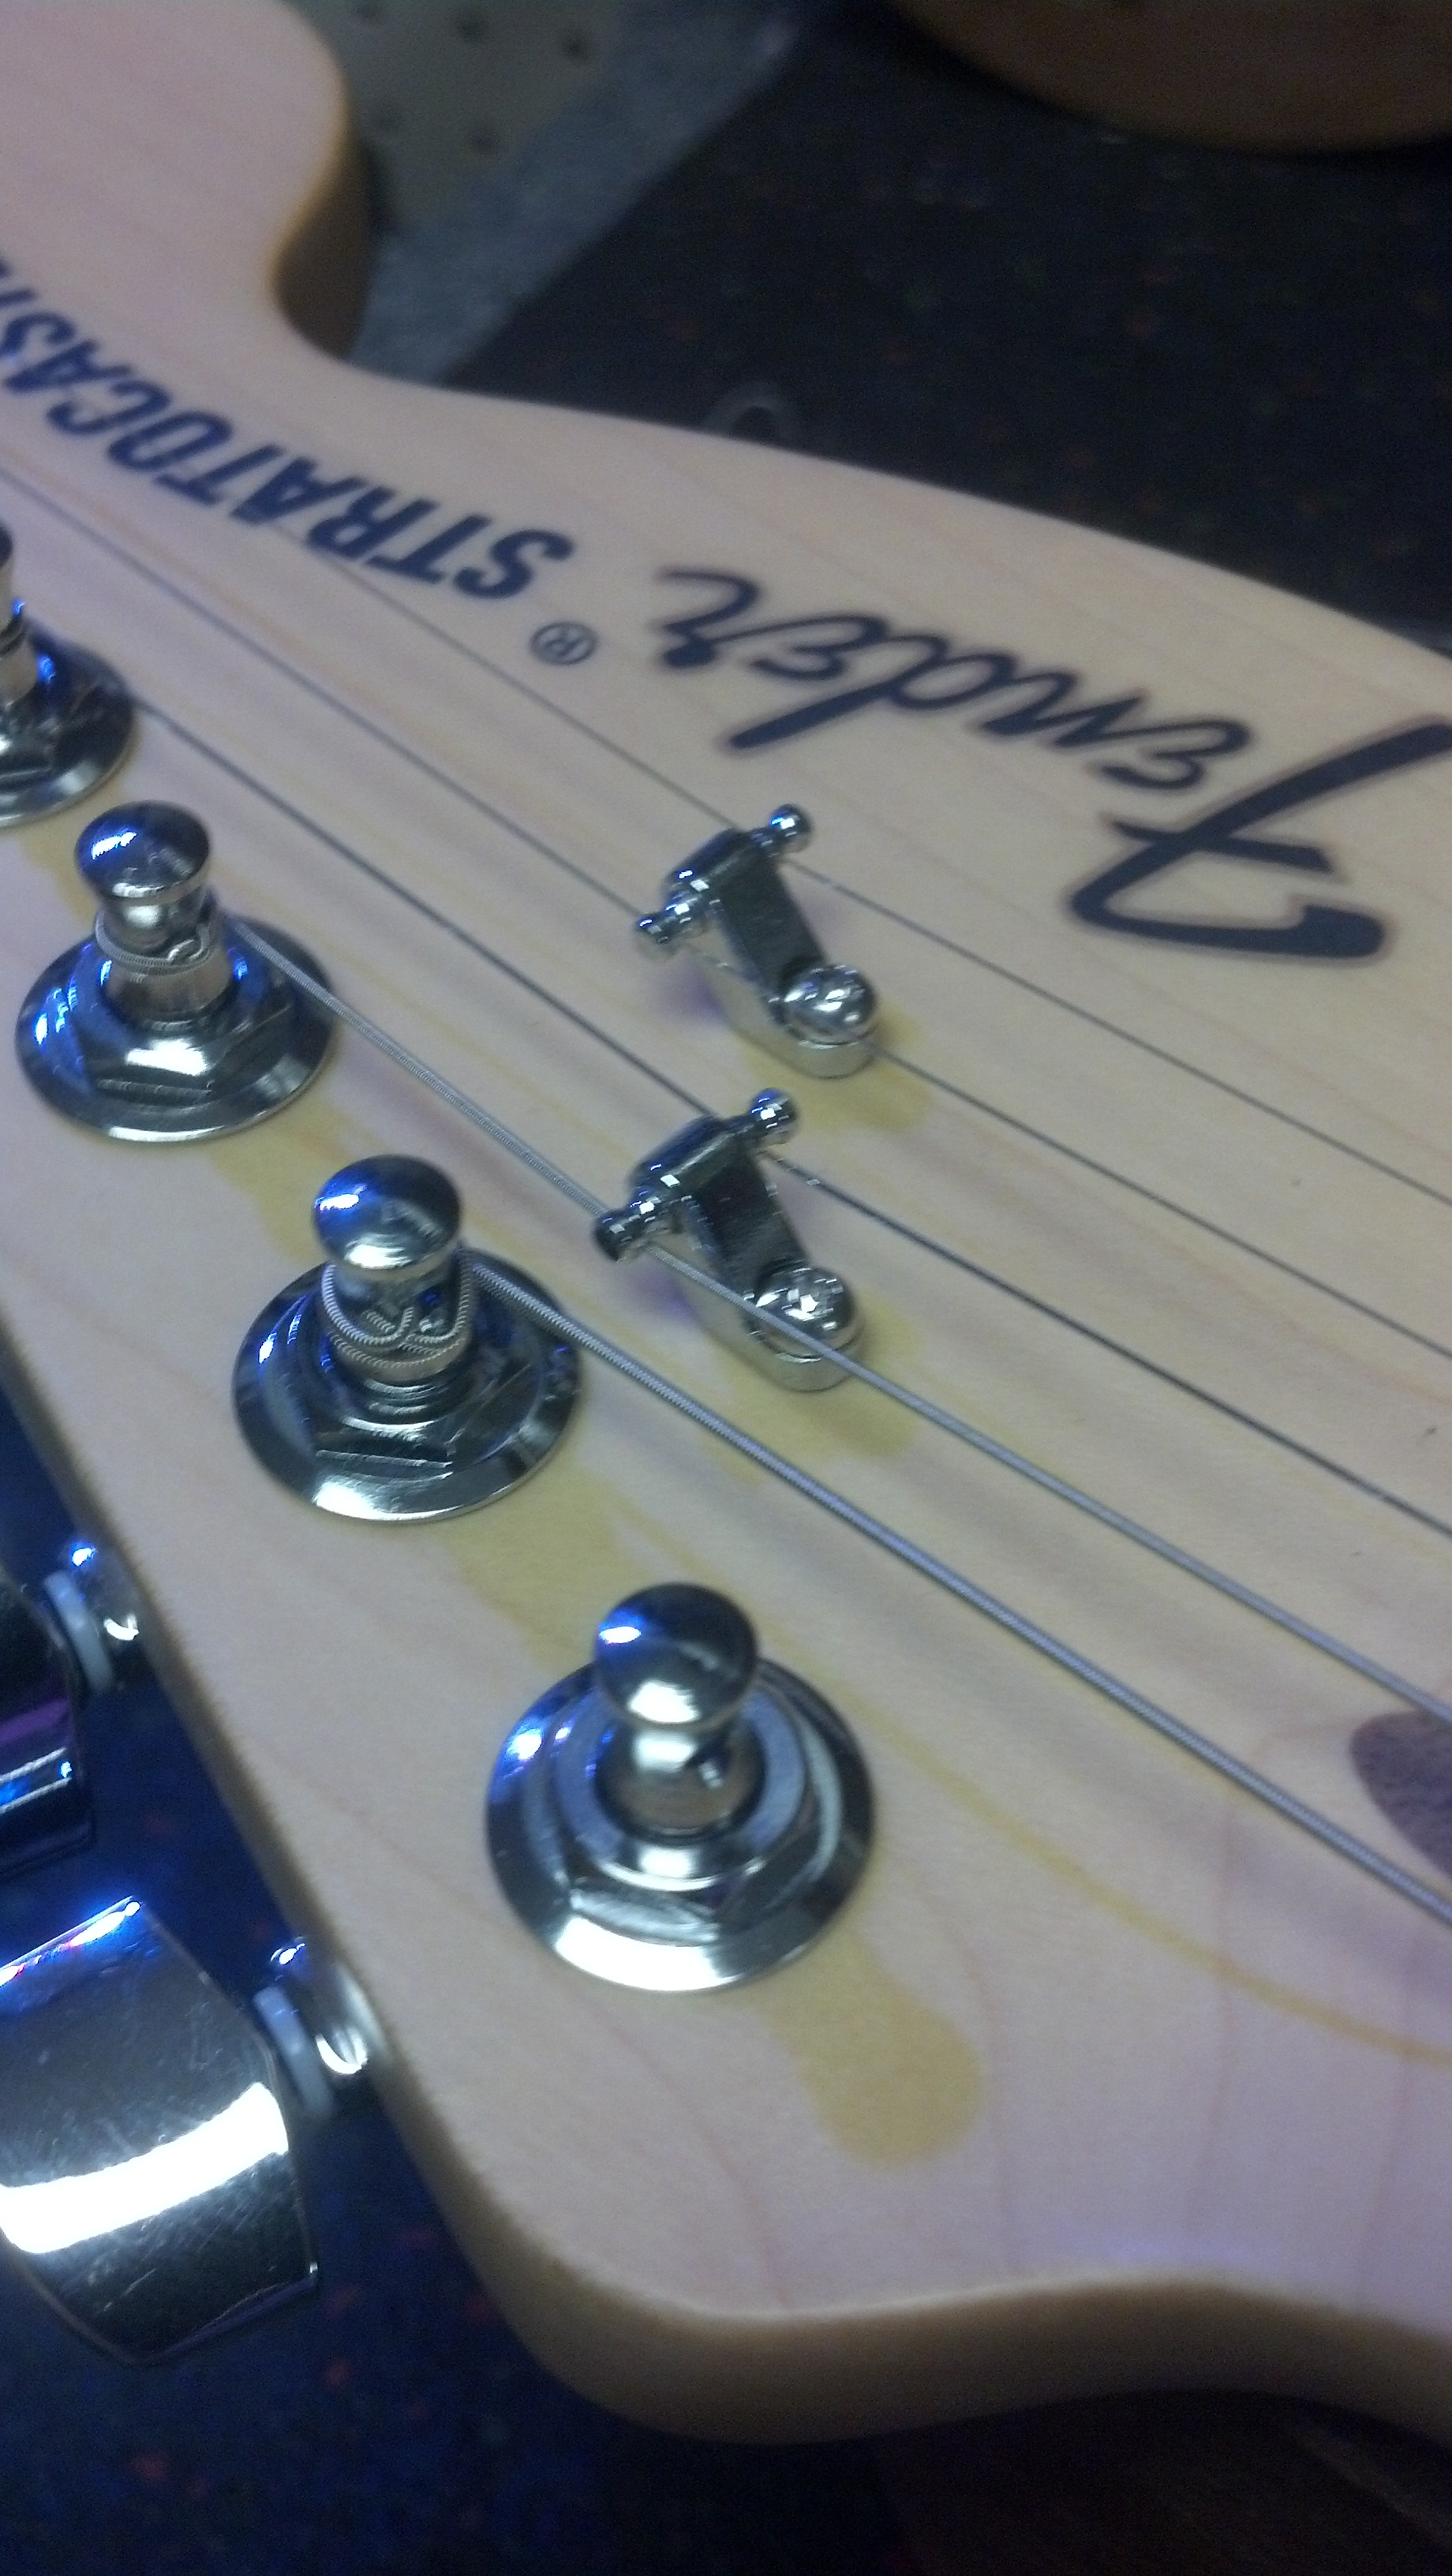 How To Change Electric Guitar Strings Sweetwater What Wiring Mods Do You Have Page 3 Fender Stratocaster Figure 10